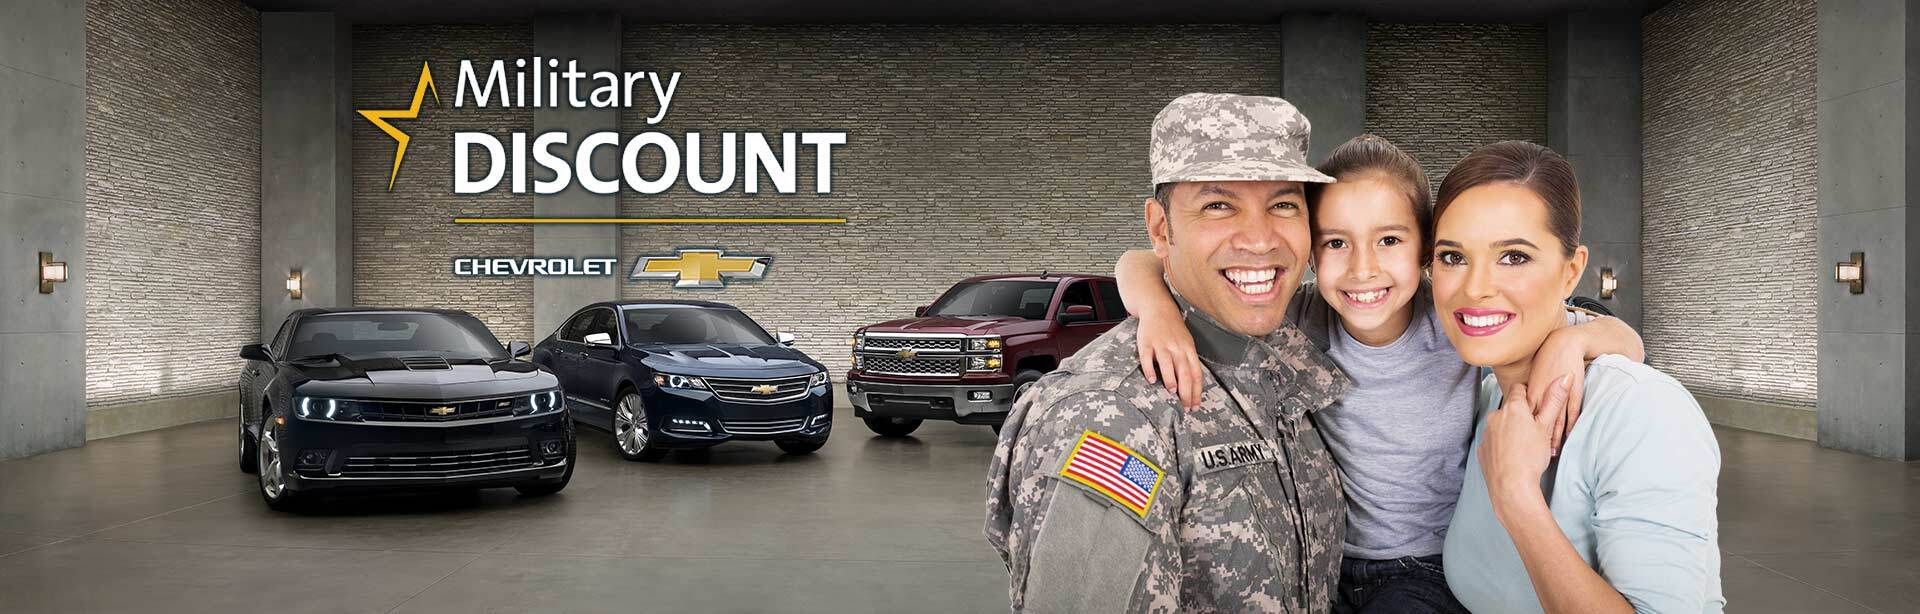 Chevy Military Discount in Flemingsburg, KY | Cheap Chevrolet